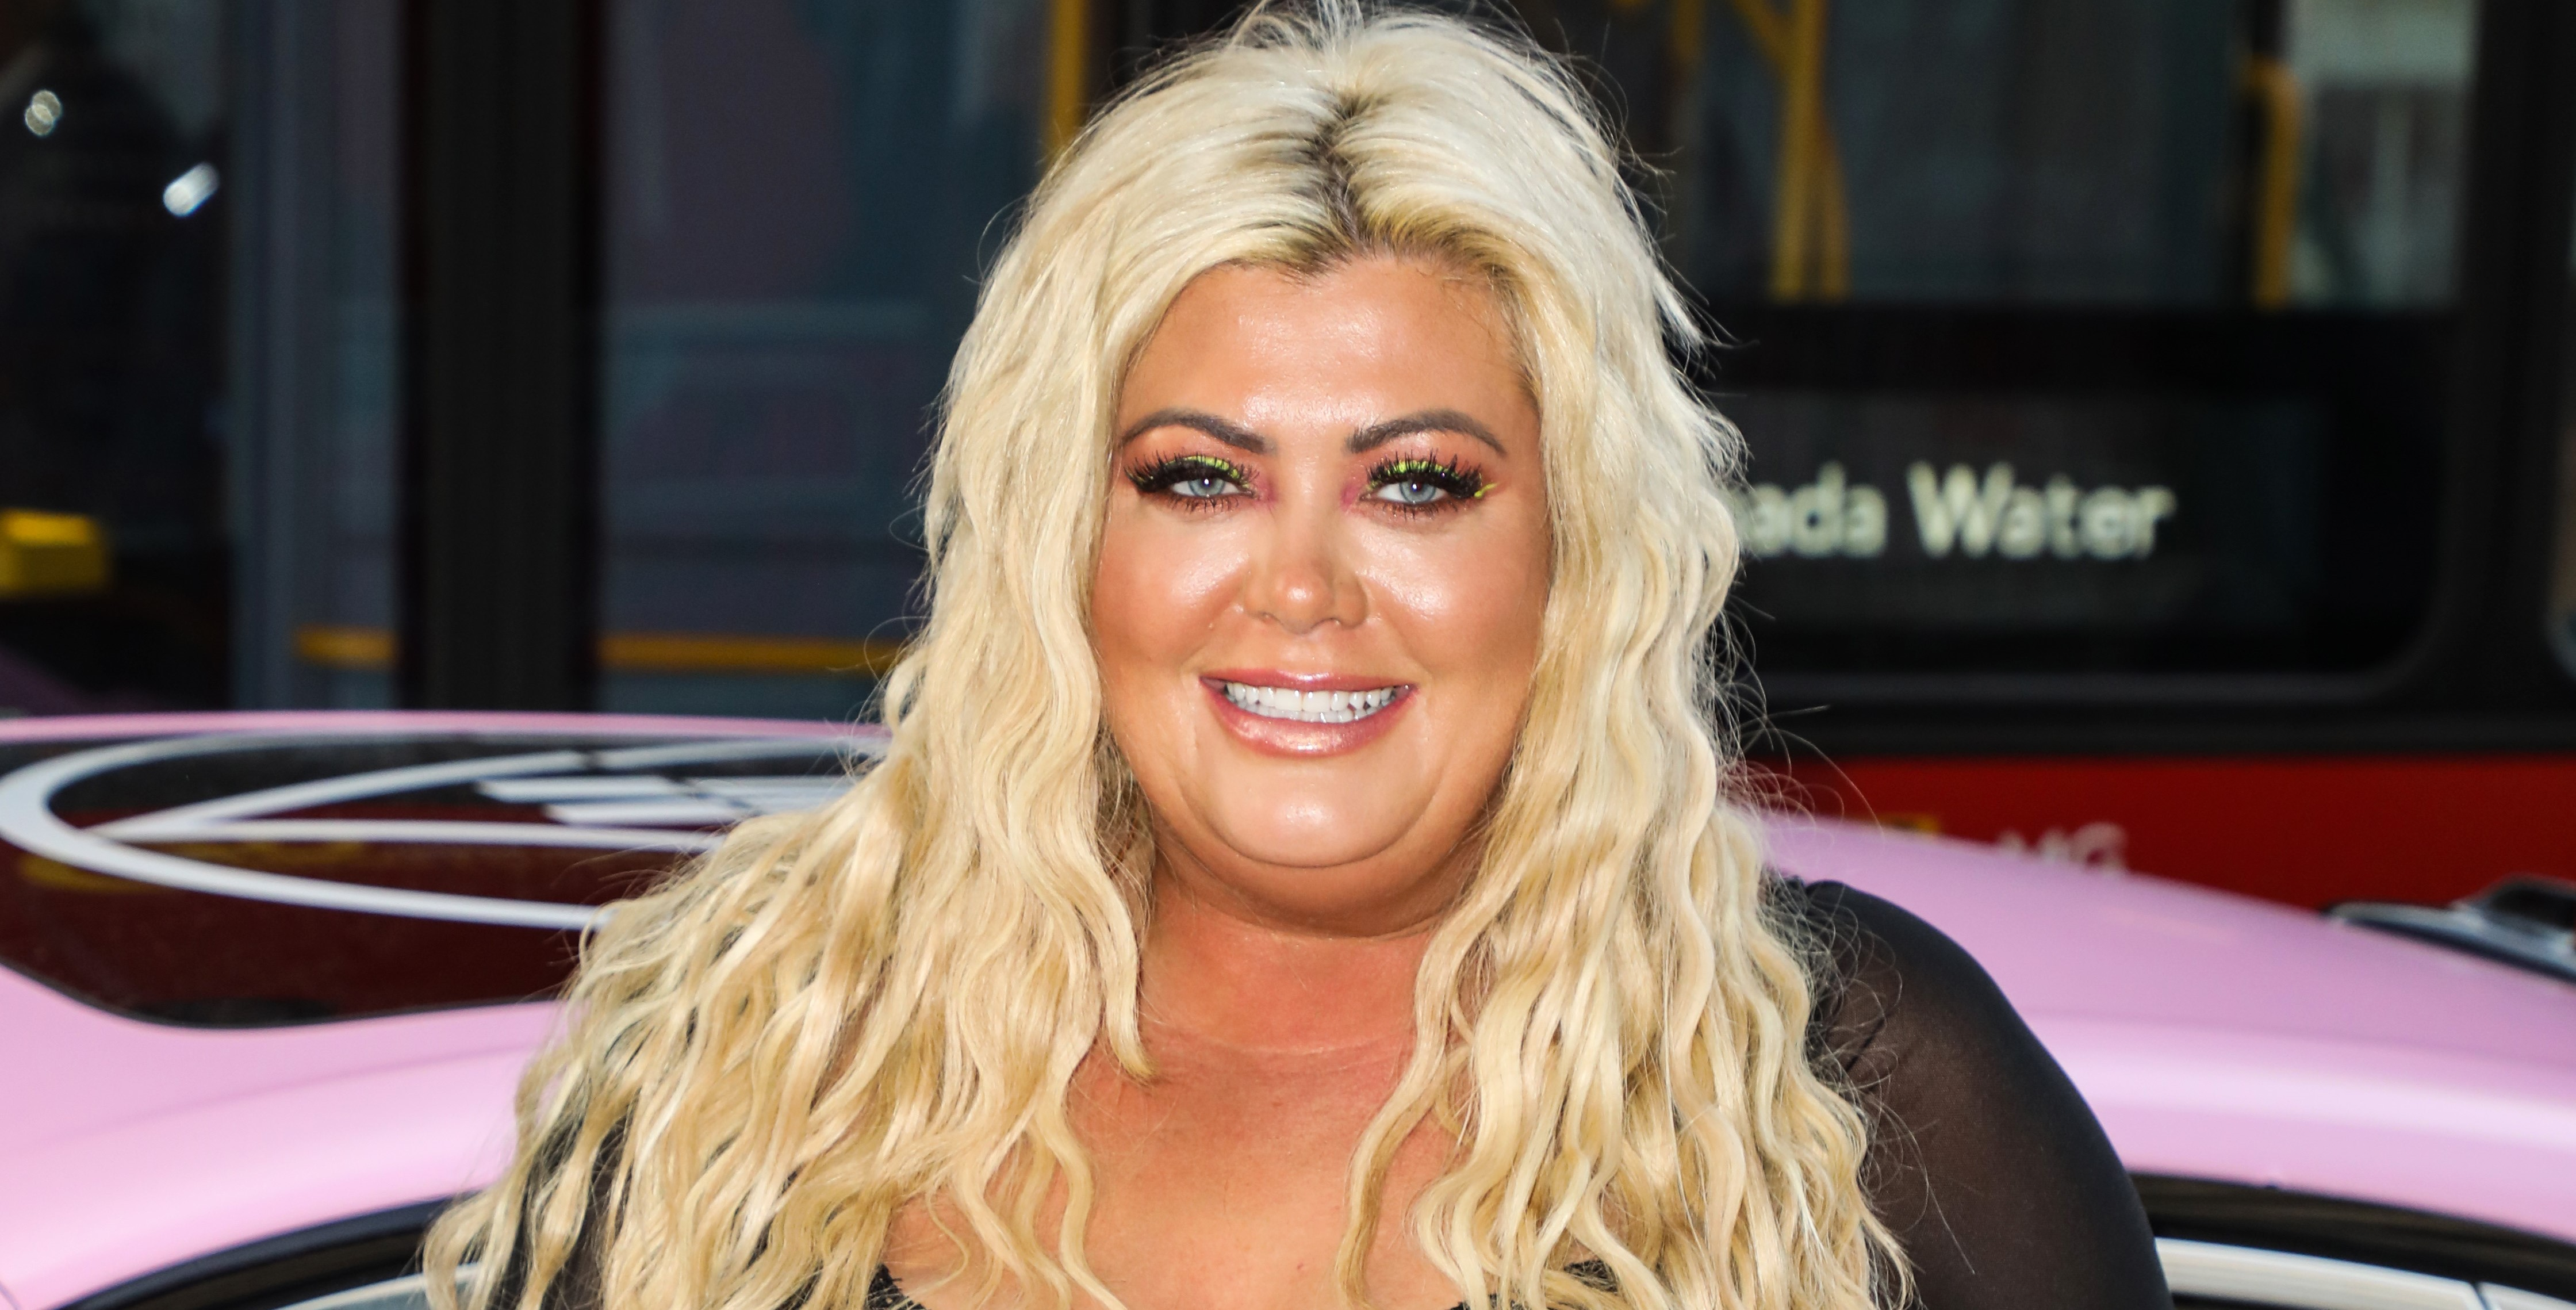 Gemma Collins shows off weight loss as she flashes bra in sheer top